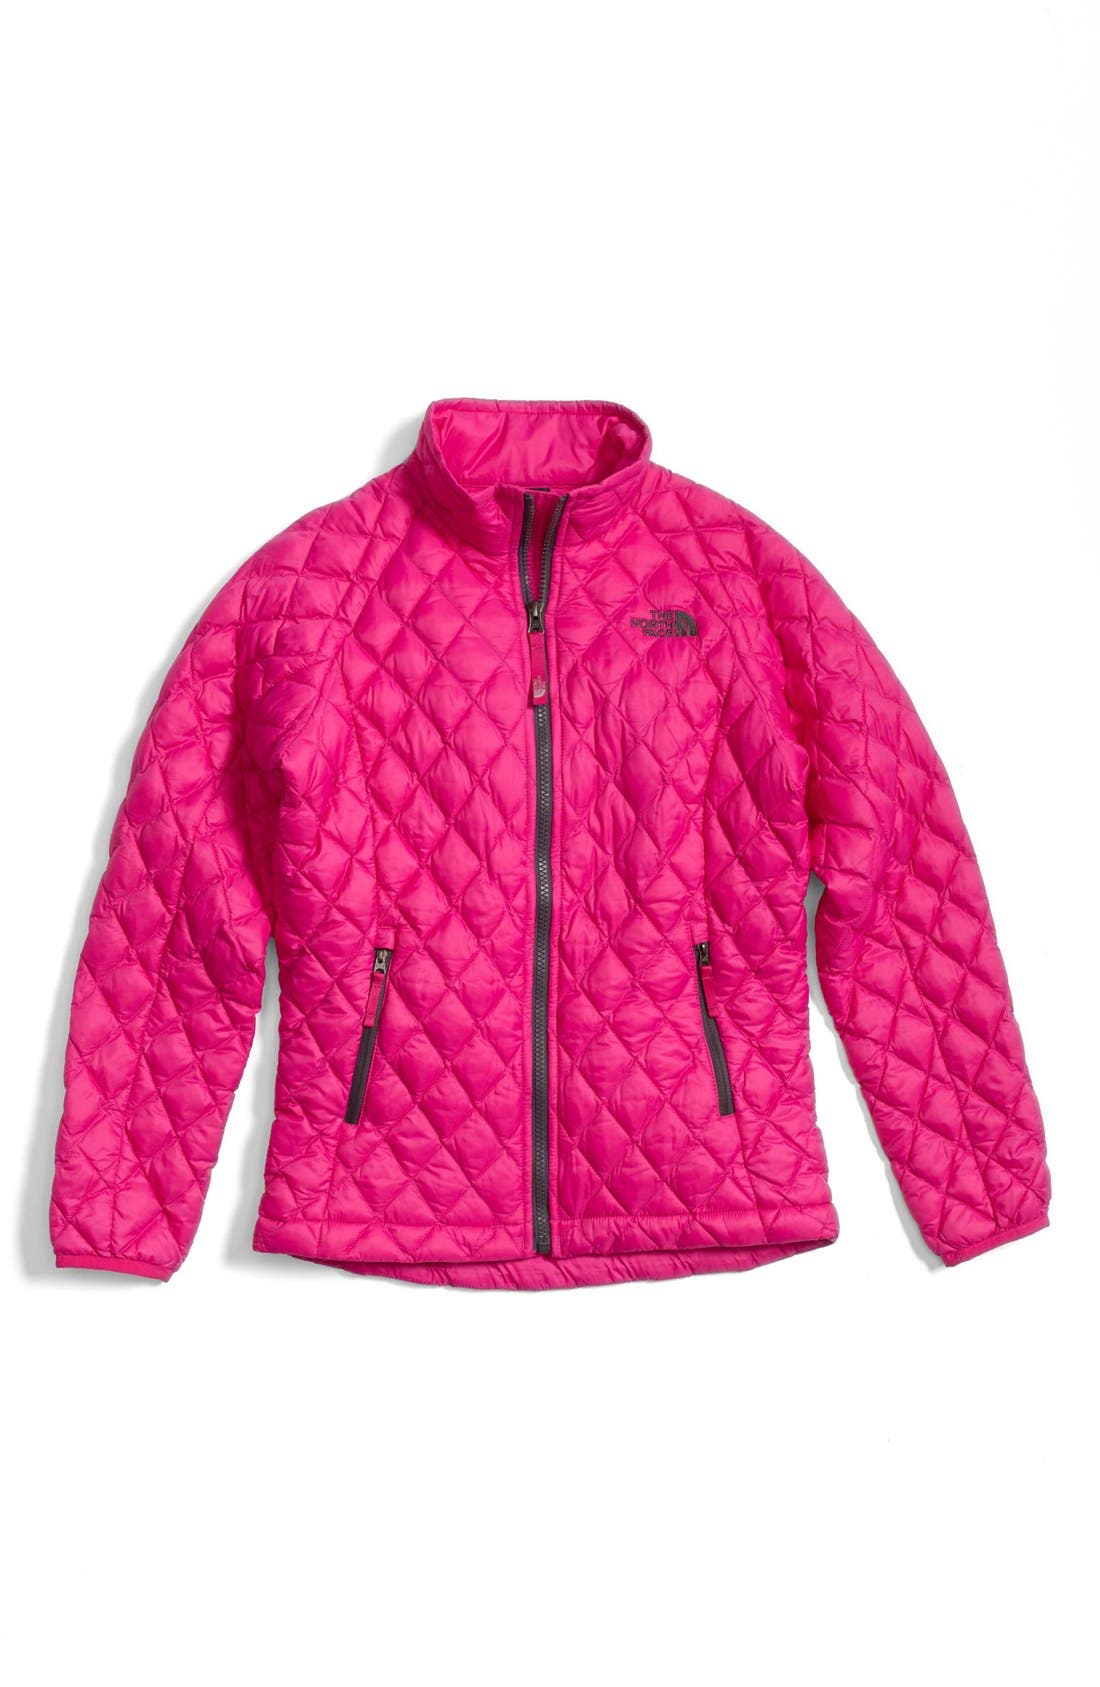 Main Image - The North Face Reversible Beanie, Quilted Jacket & Tucker + Tate Denim Leggings (Little Girls & Big Girls)